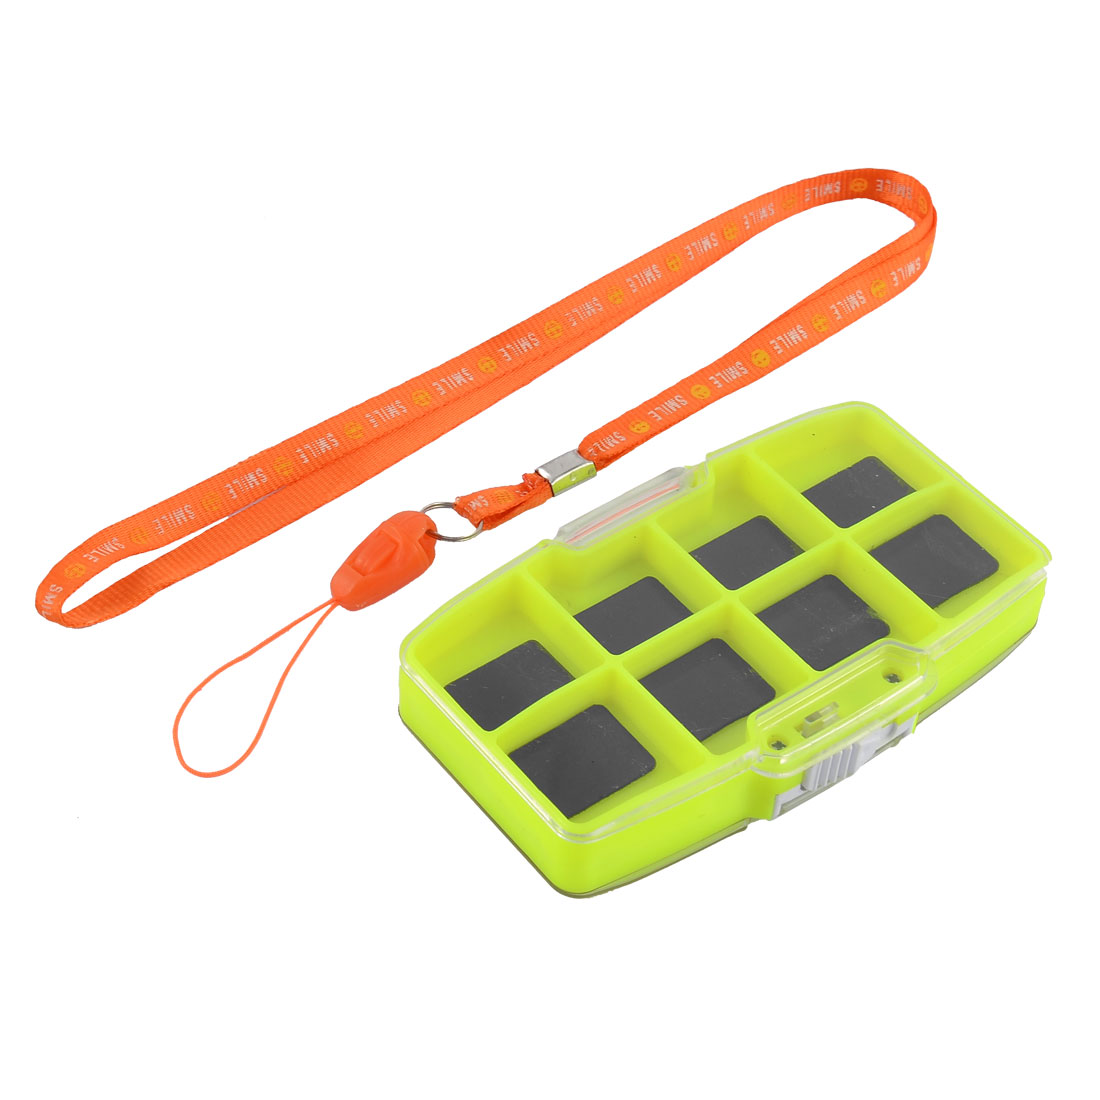 Fishing Magnetic 13 Compartments Fish Tackle Hook Bait Storage Box Case w Strap by Unique-Bargains